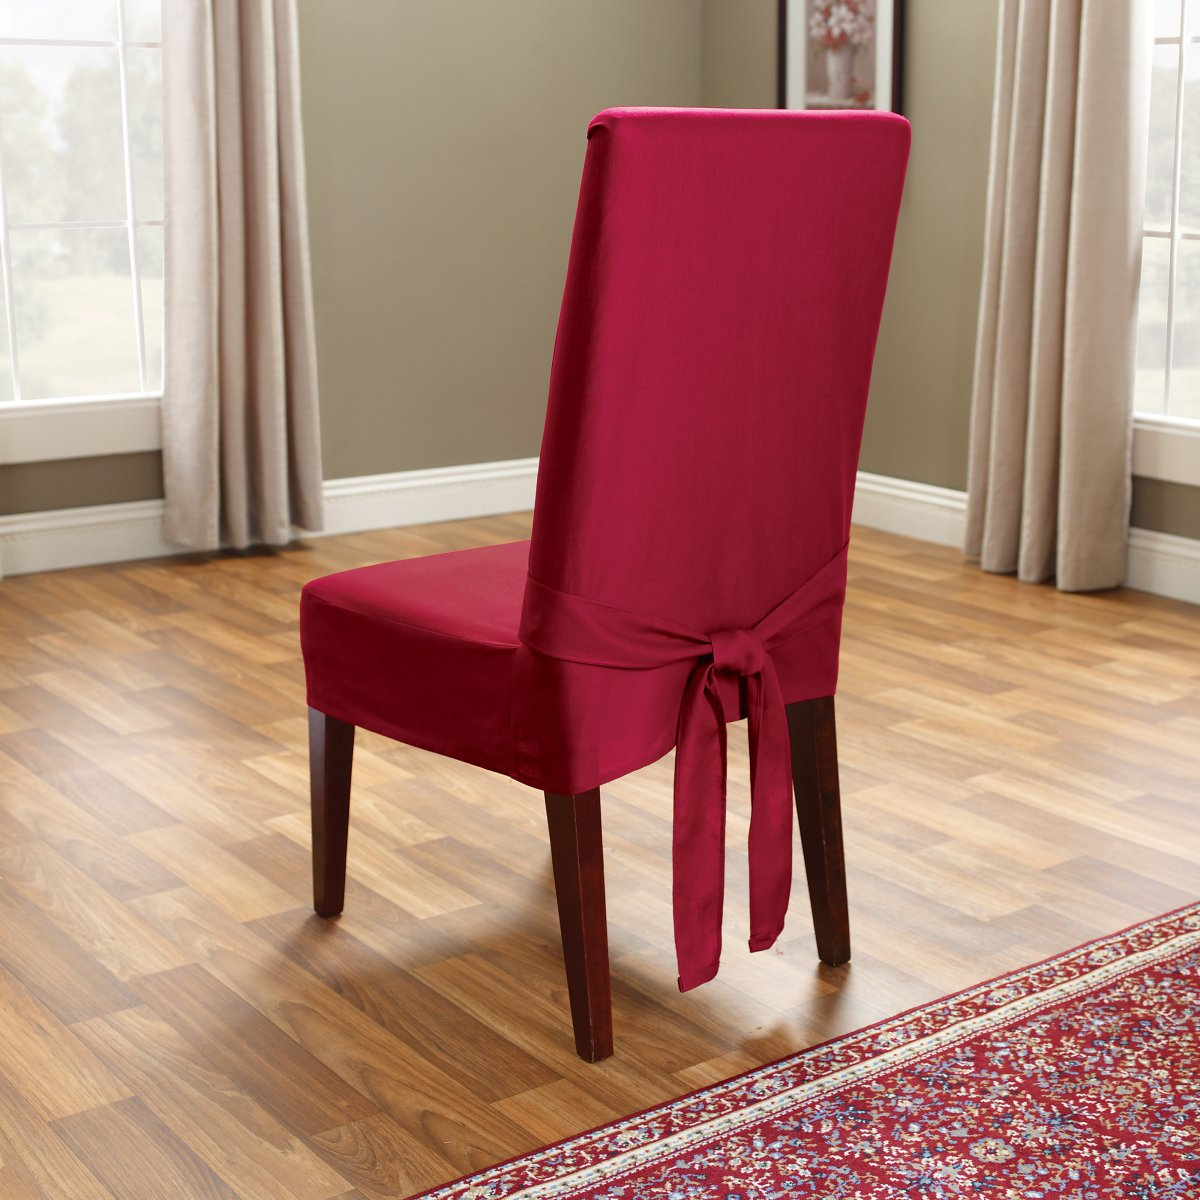 dining chair covers - HD1200×1200